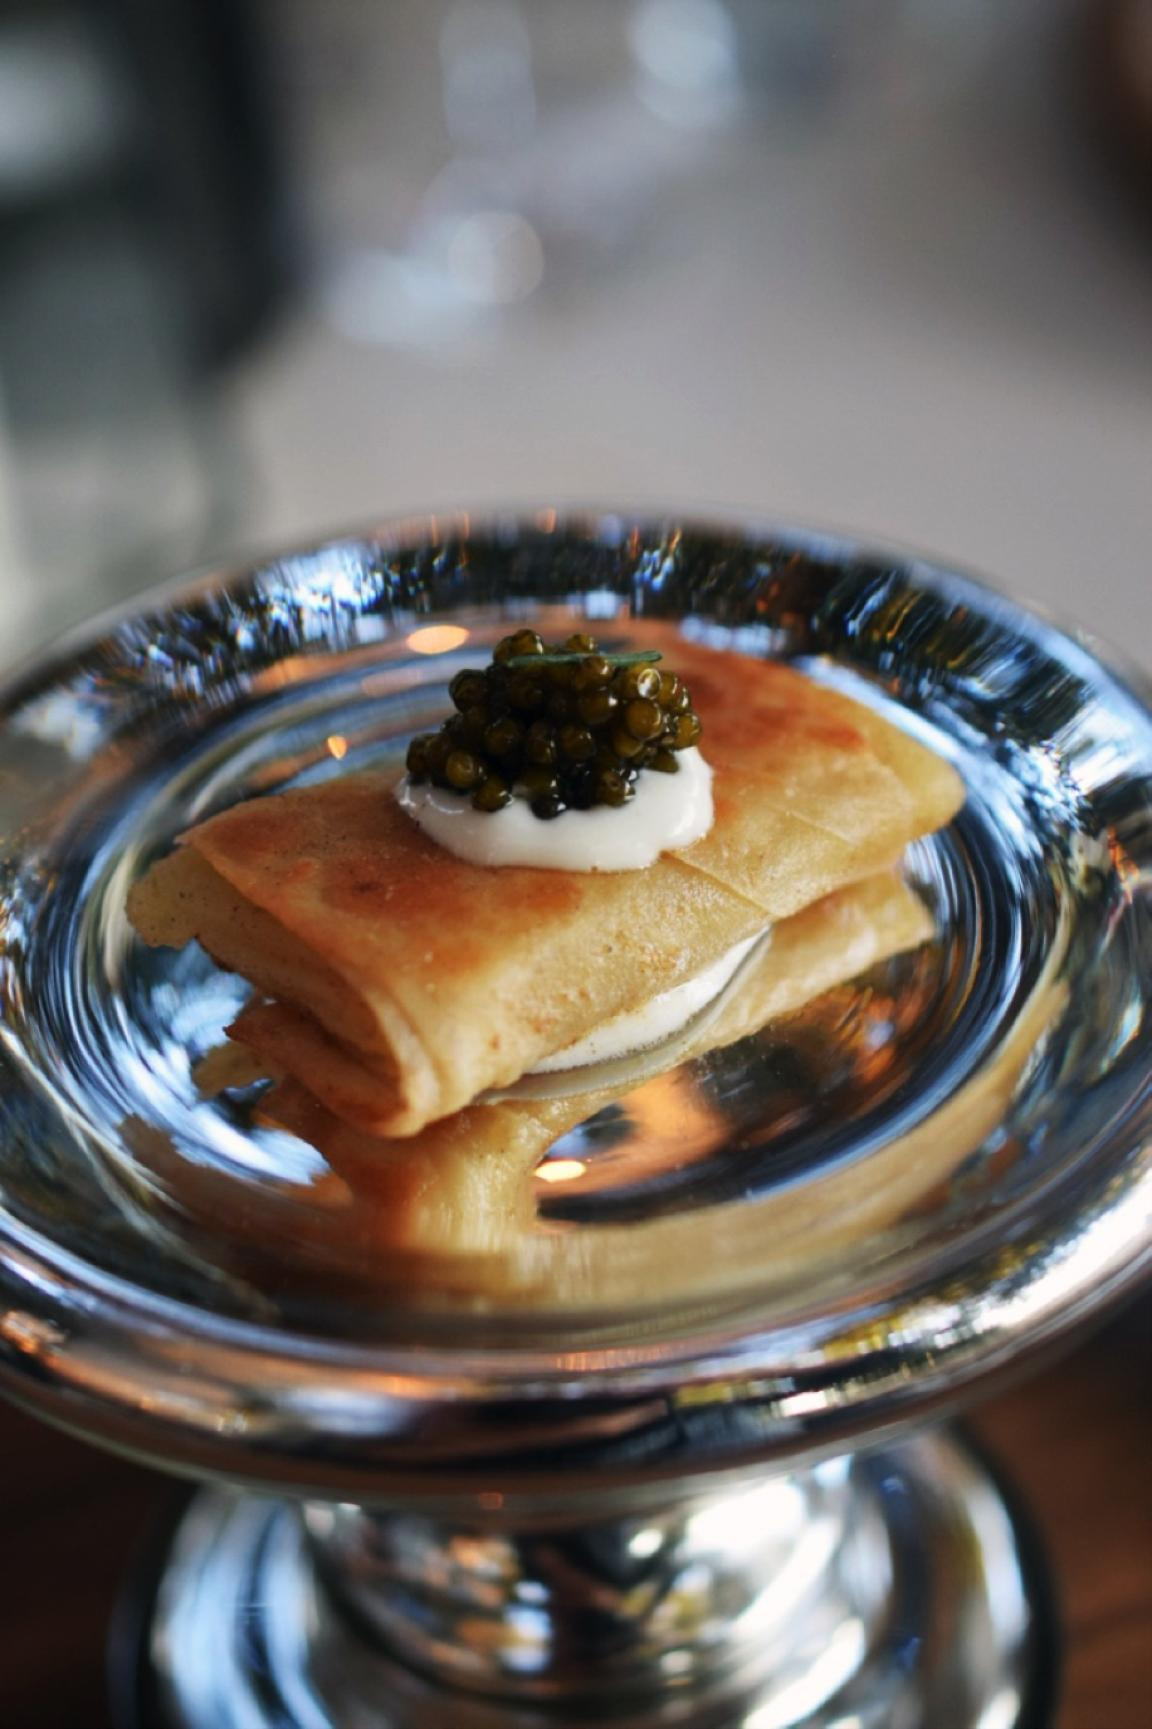 Crispy potato burrito with caviar. Photo: AGringoInMexico